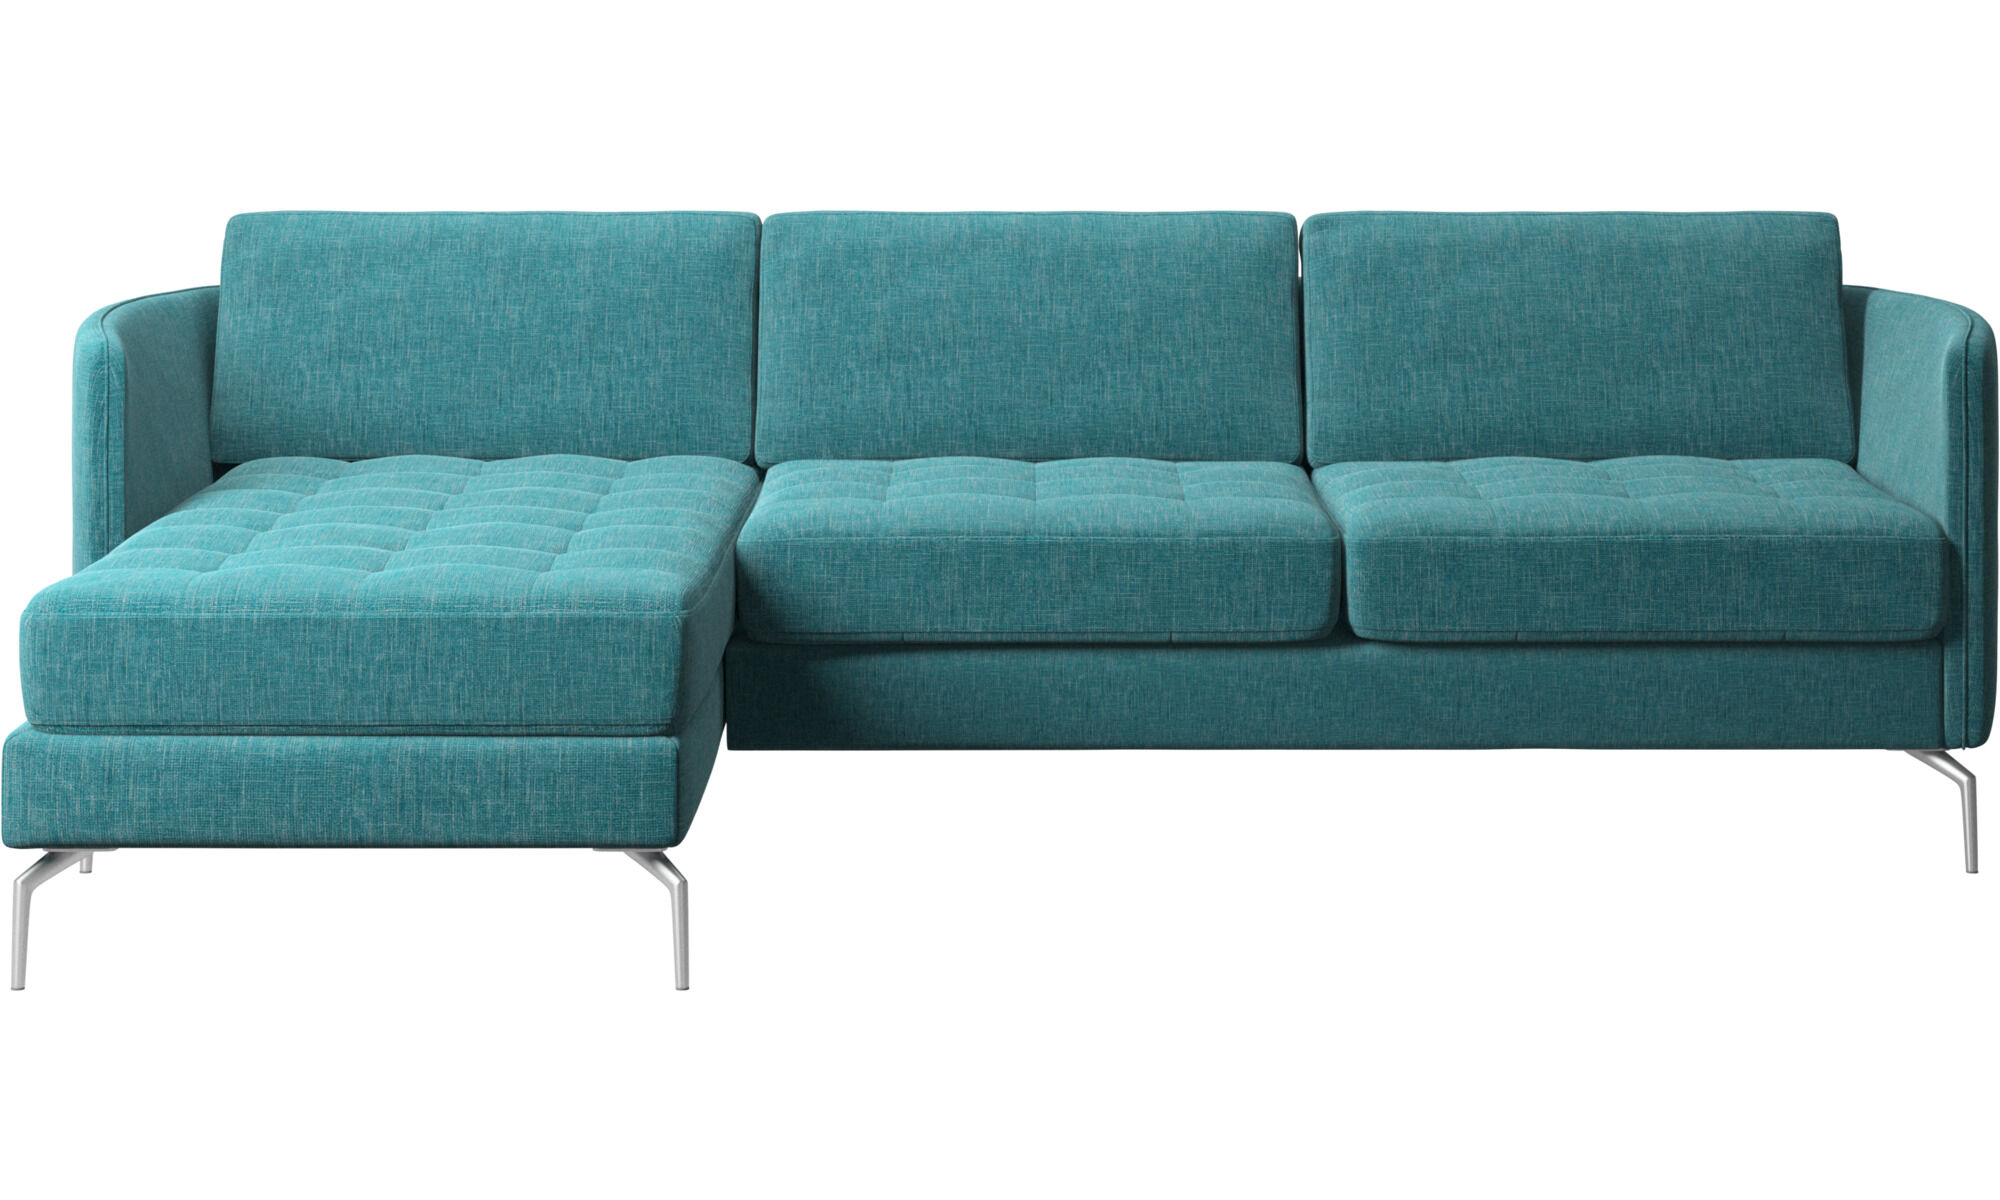 Chaise lounge sofas - Osaka sofa with resting unit tufted seat - Blue - Fabric  sc 1 st  BoConcept : chaise longue sofa bed - Sectionals, Sofas & Couches